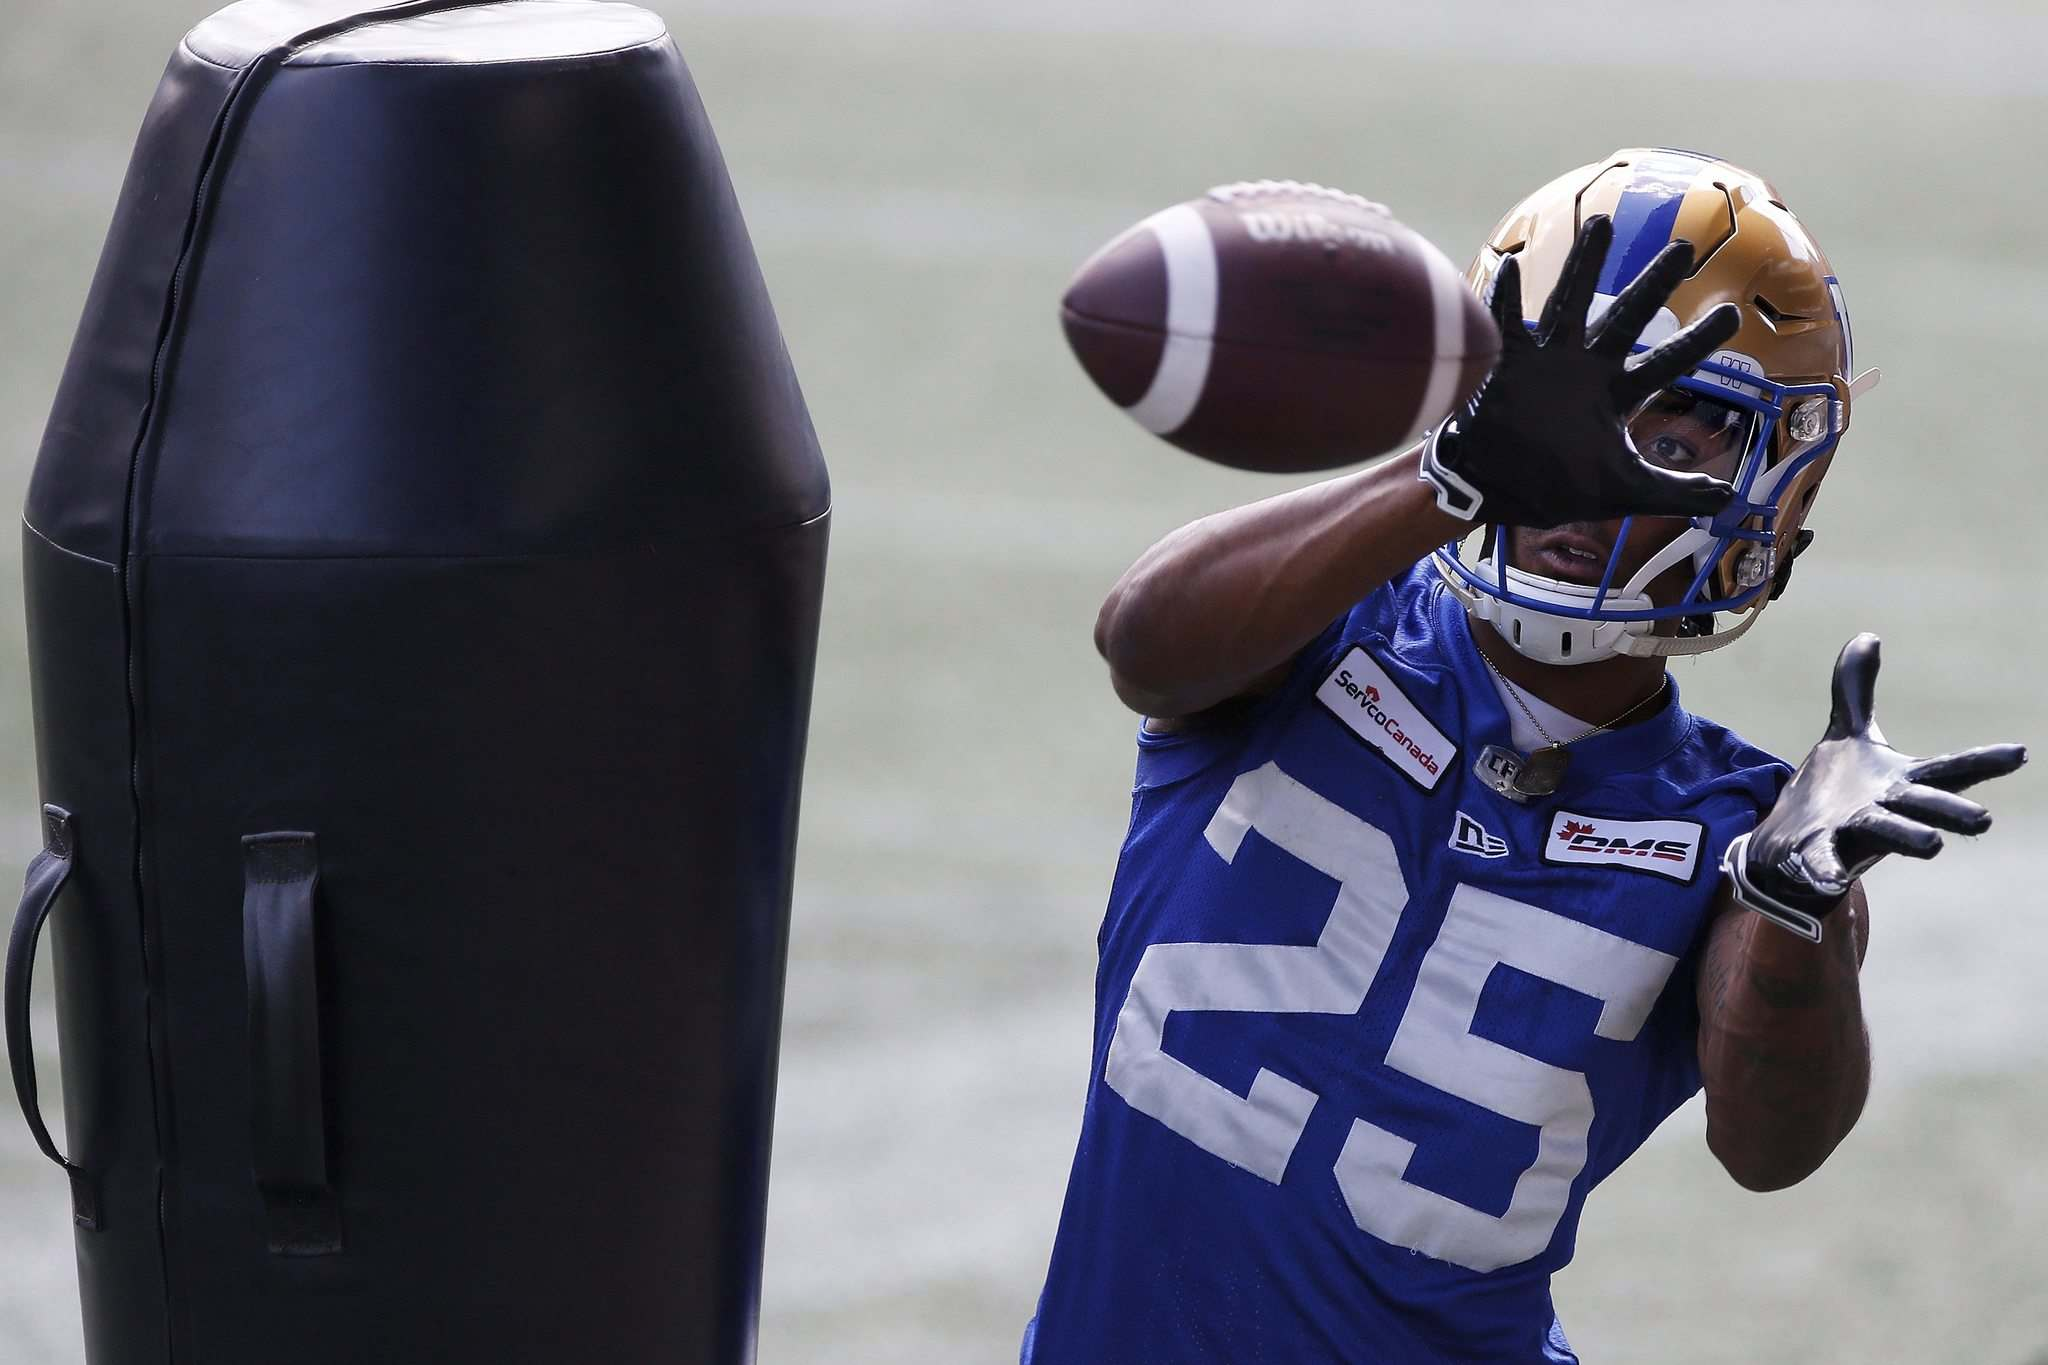 JOHN WOODS / WINNIPEG FREE PRESS</p><p>Winnipeg Blue Bombers' Josh Miller says he asks God to let his late mother know when he's playing football. 'I hope she's smiling and I hope she's proud,' he said.</p>